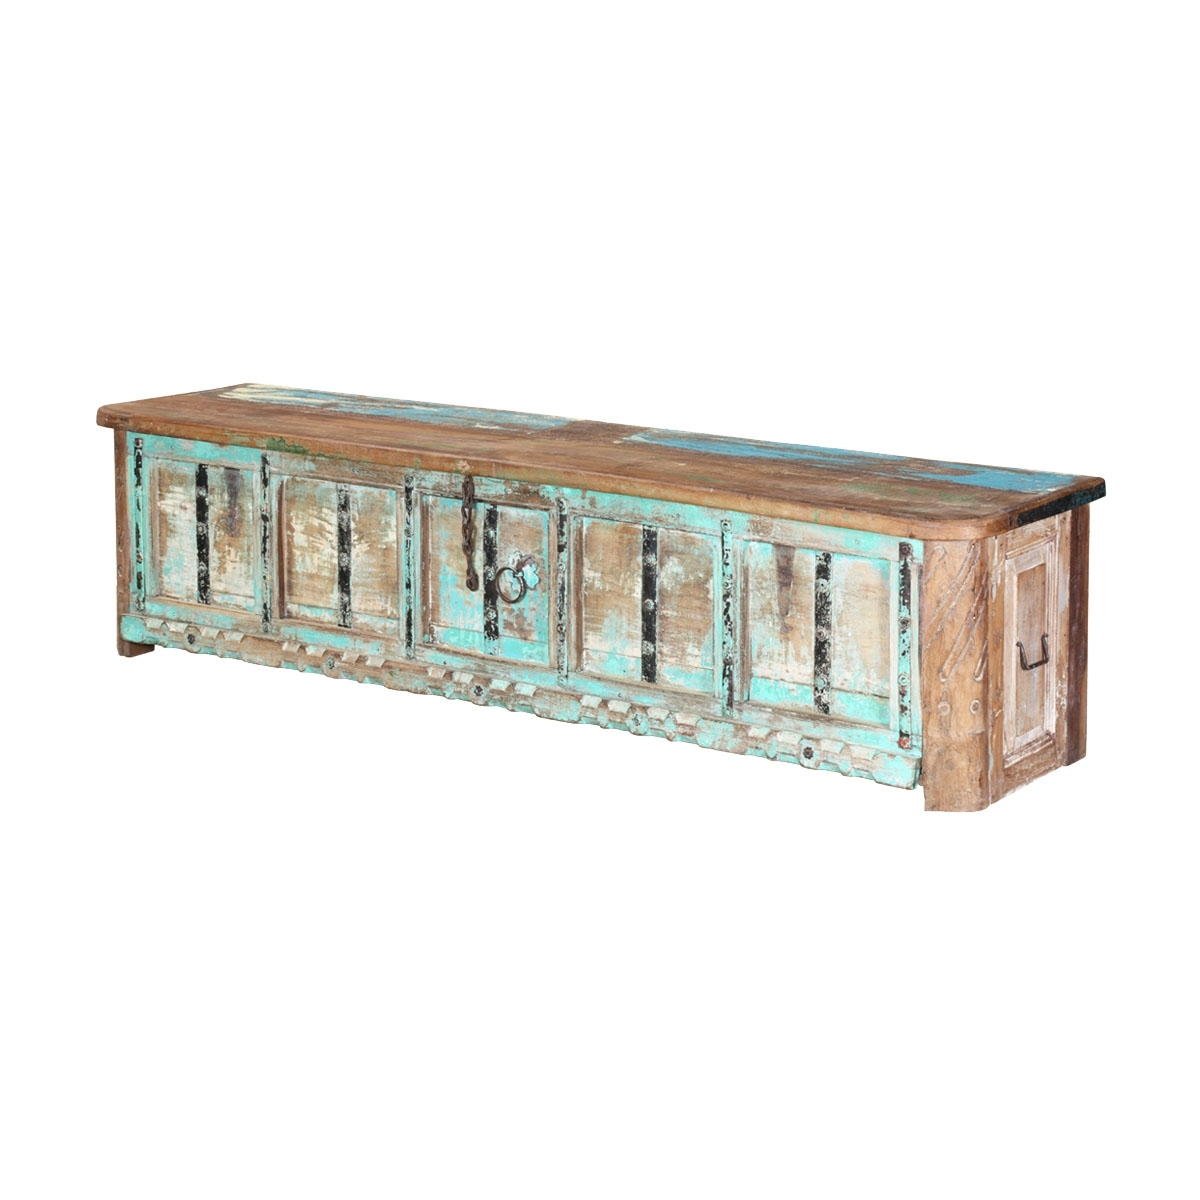 Boyce Rustic Turquoise Reclaimed Wood Large Storage Coffee Table Chest Within 2018 Boyce Sideboards (#3 of 20)